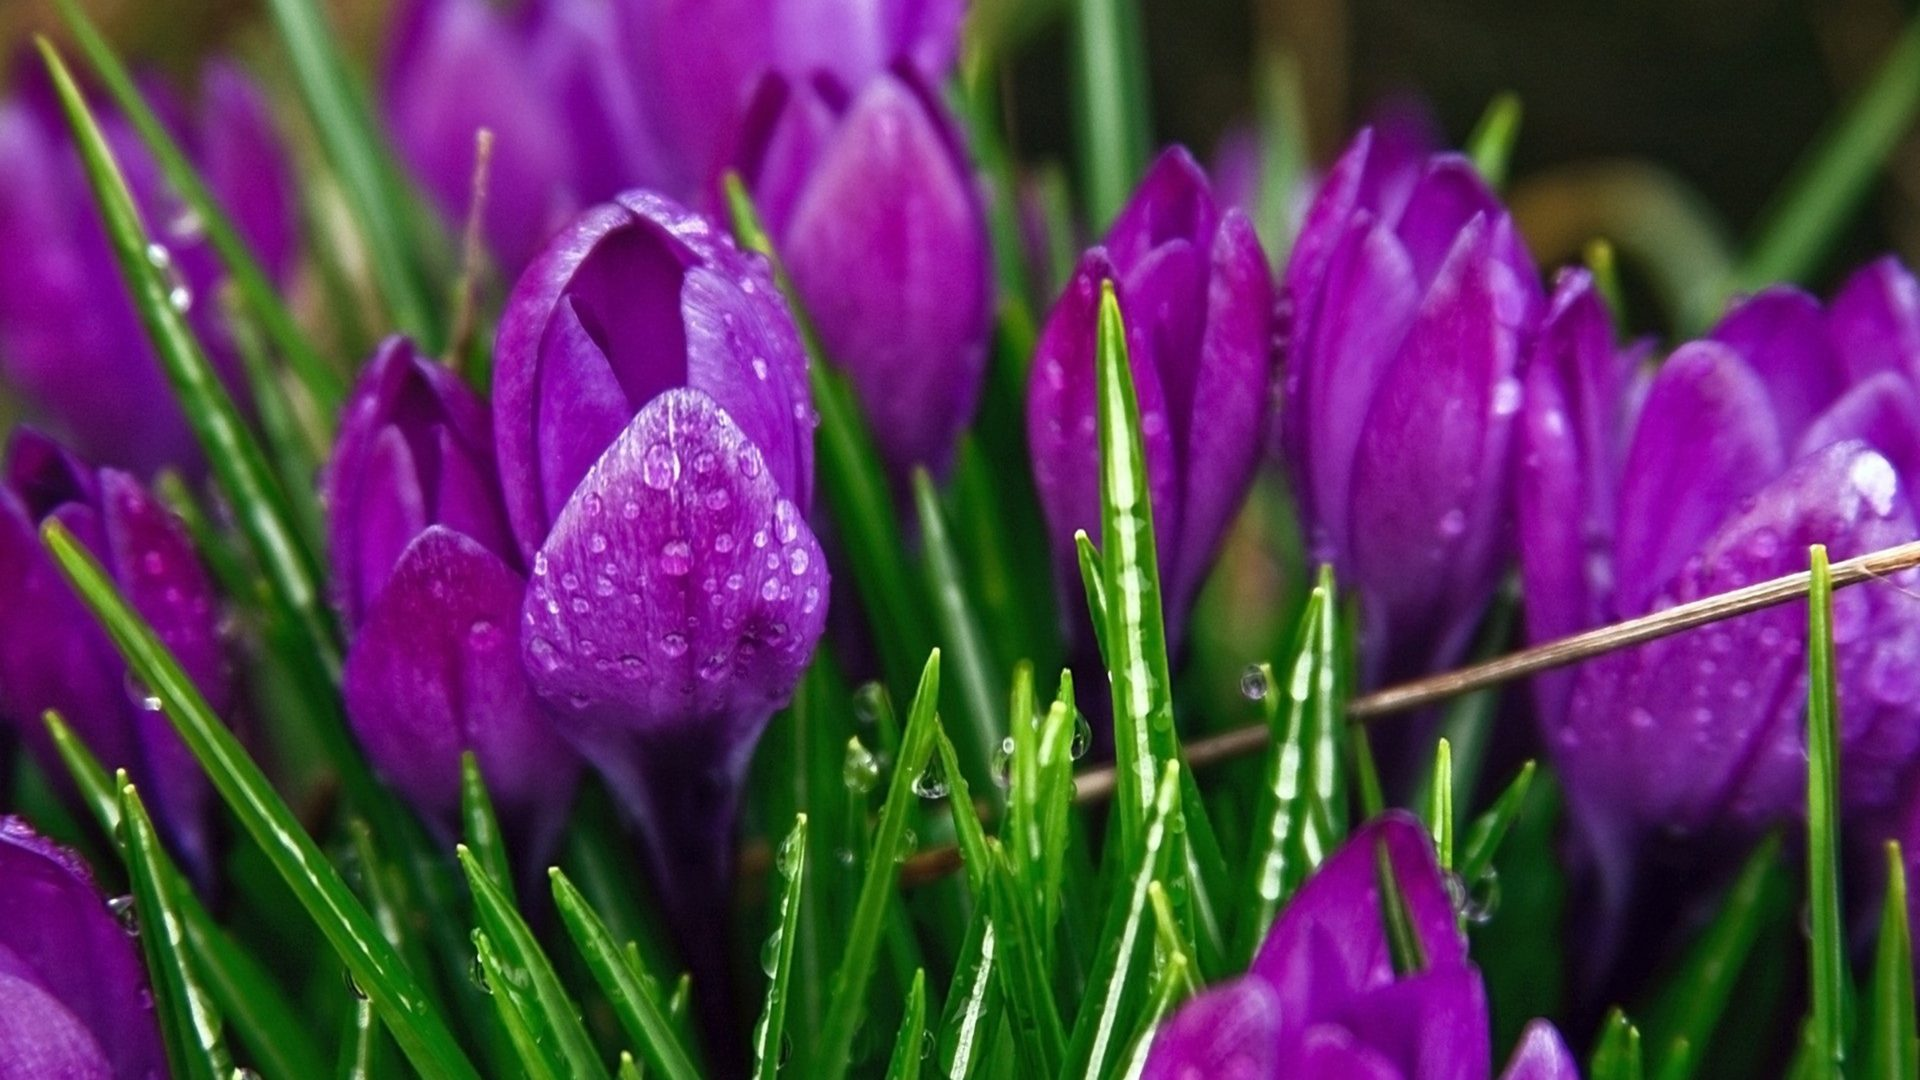 Cool 3d Abstract Wallpapers Purple Flowers Tulips Dew Drops 2560x1600 Wallpapers13 Com